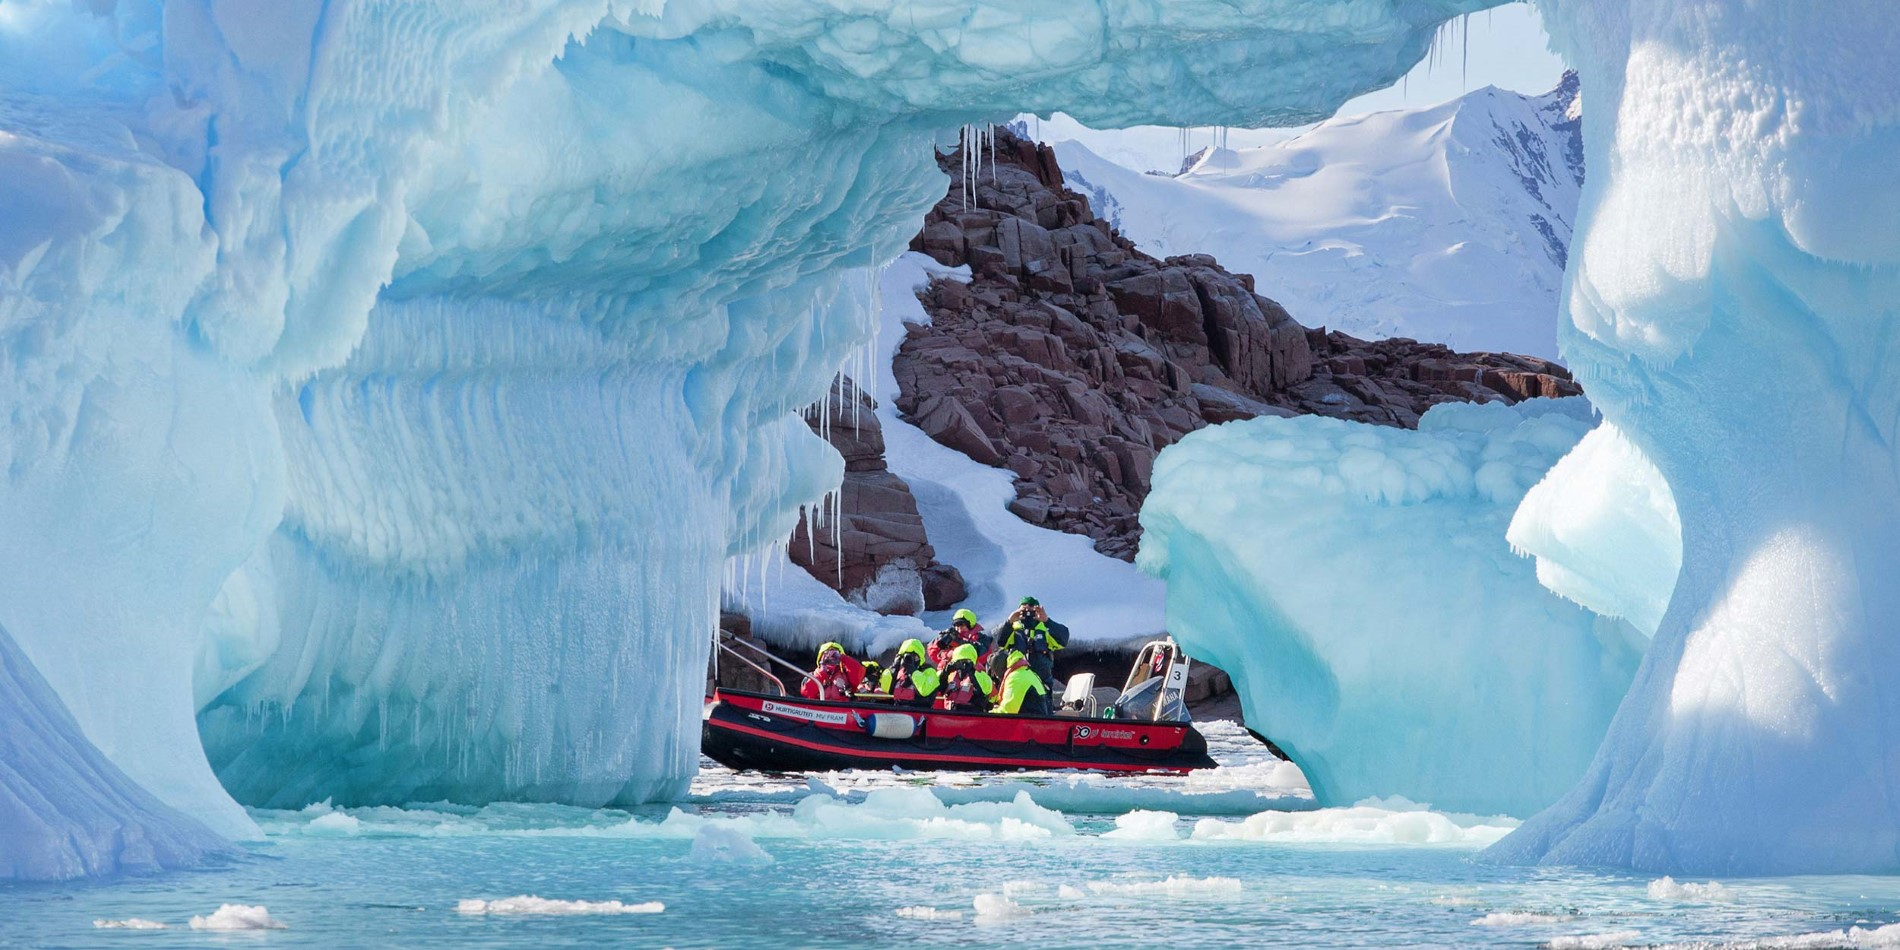 Group of tourists in small boat among spectacular ice formations